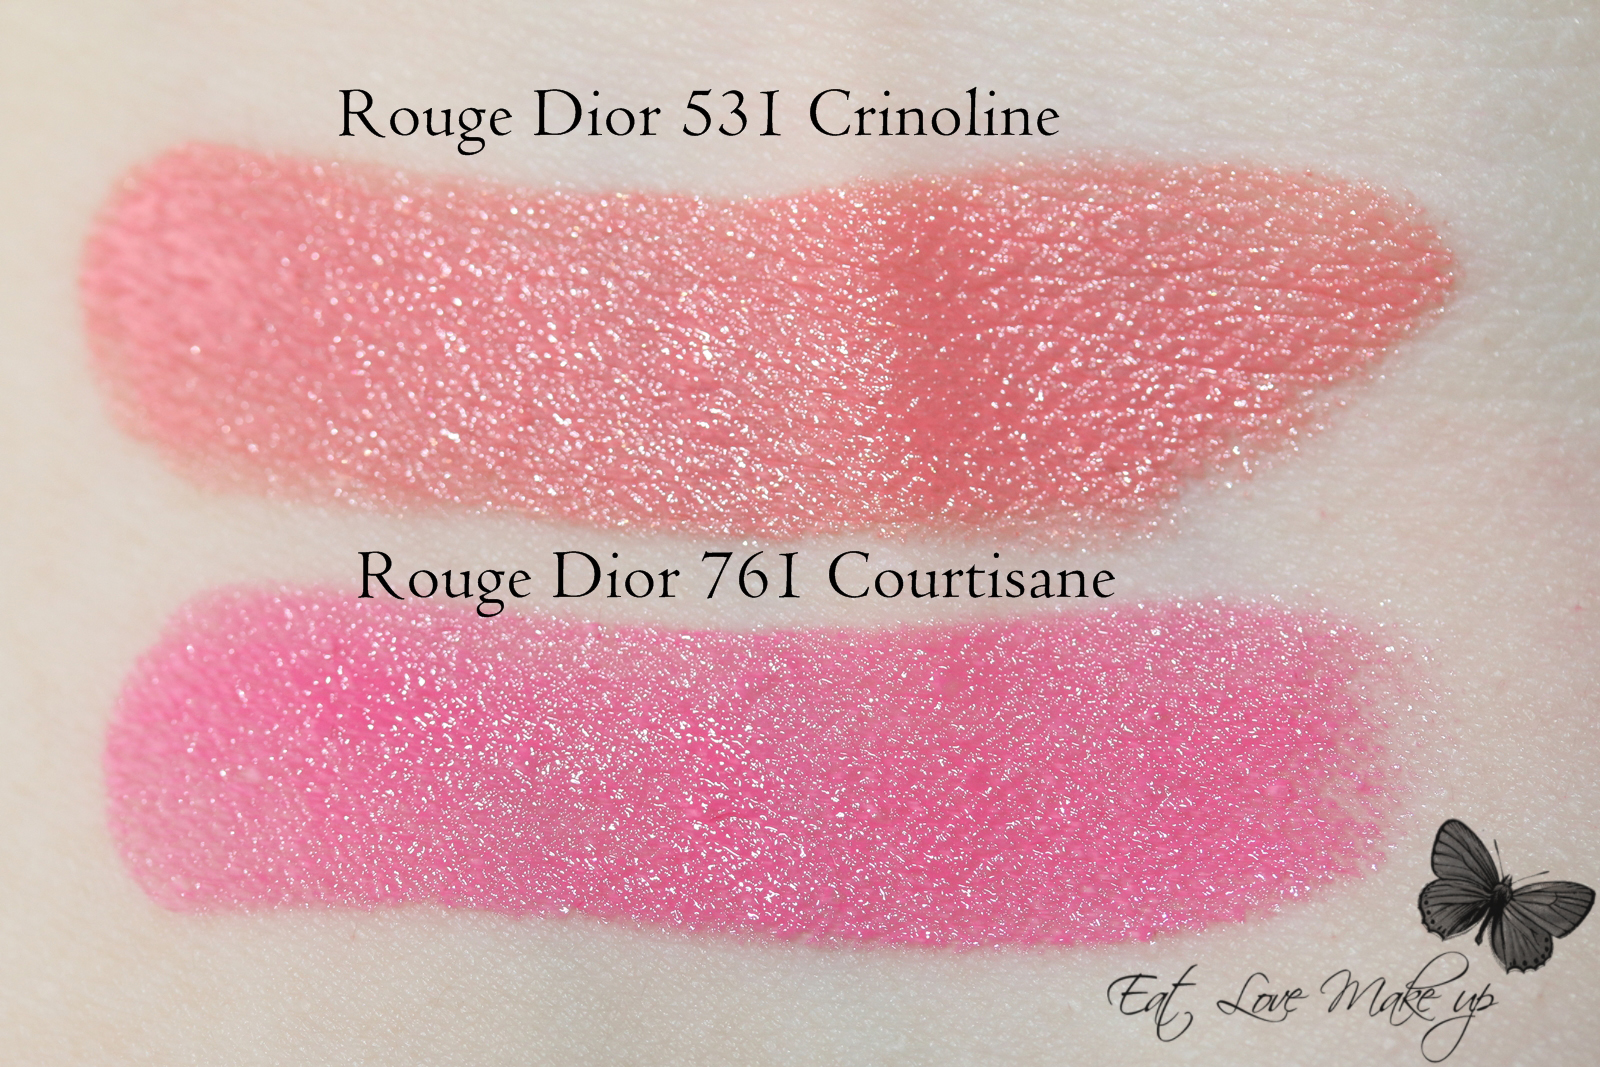 Dior Rouge Dior Rose Crinoline 531 & Courtisane 761